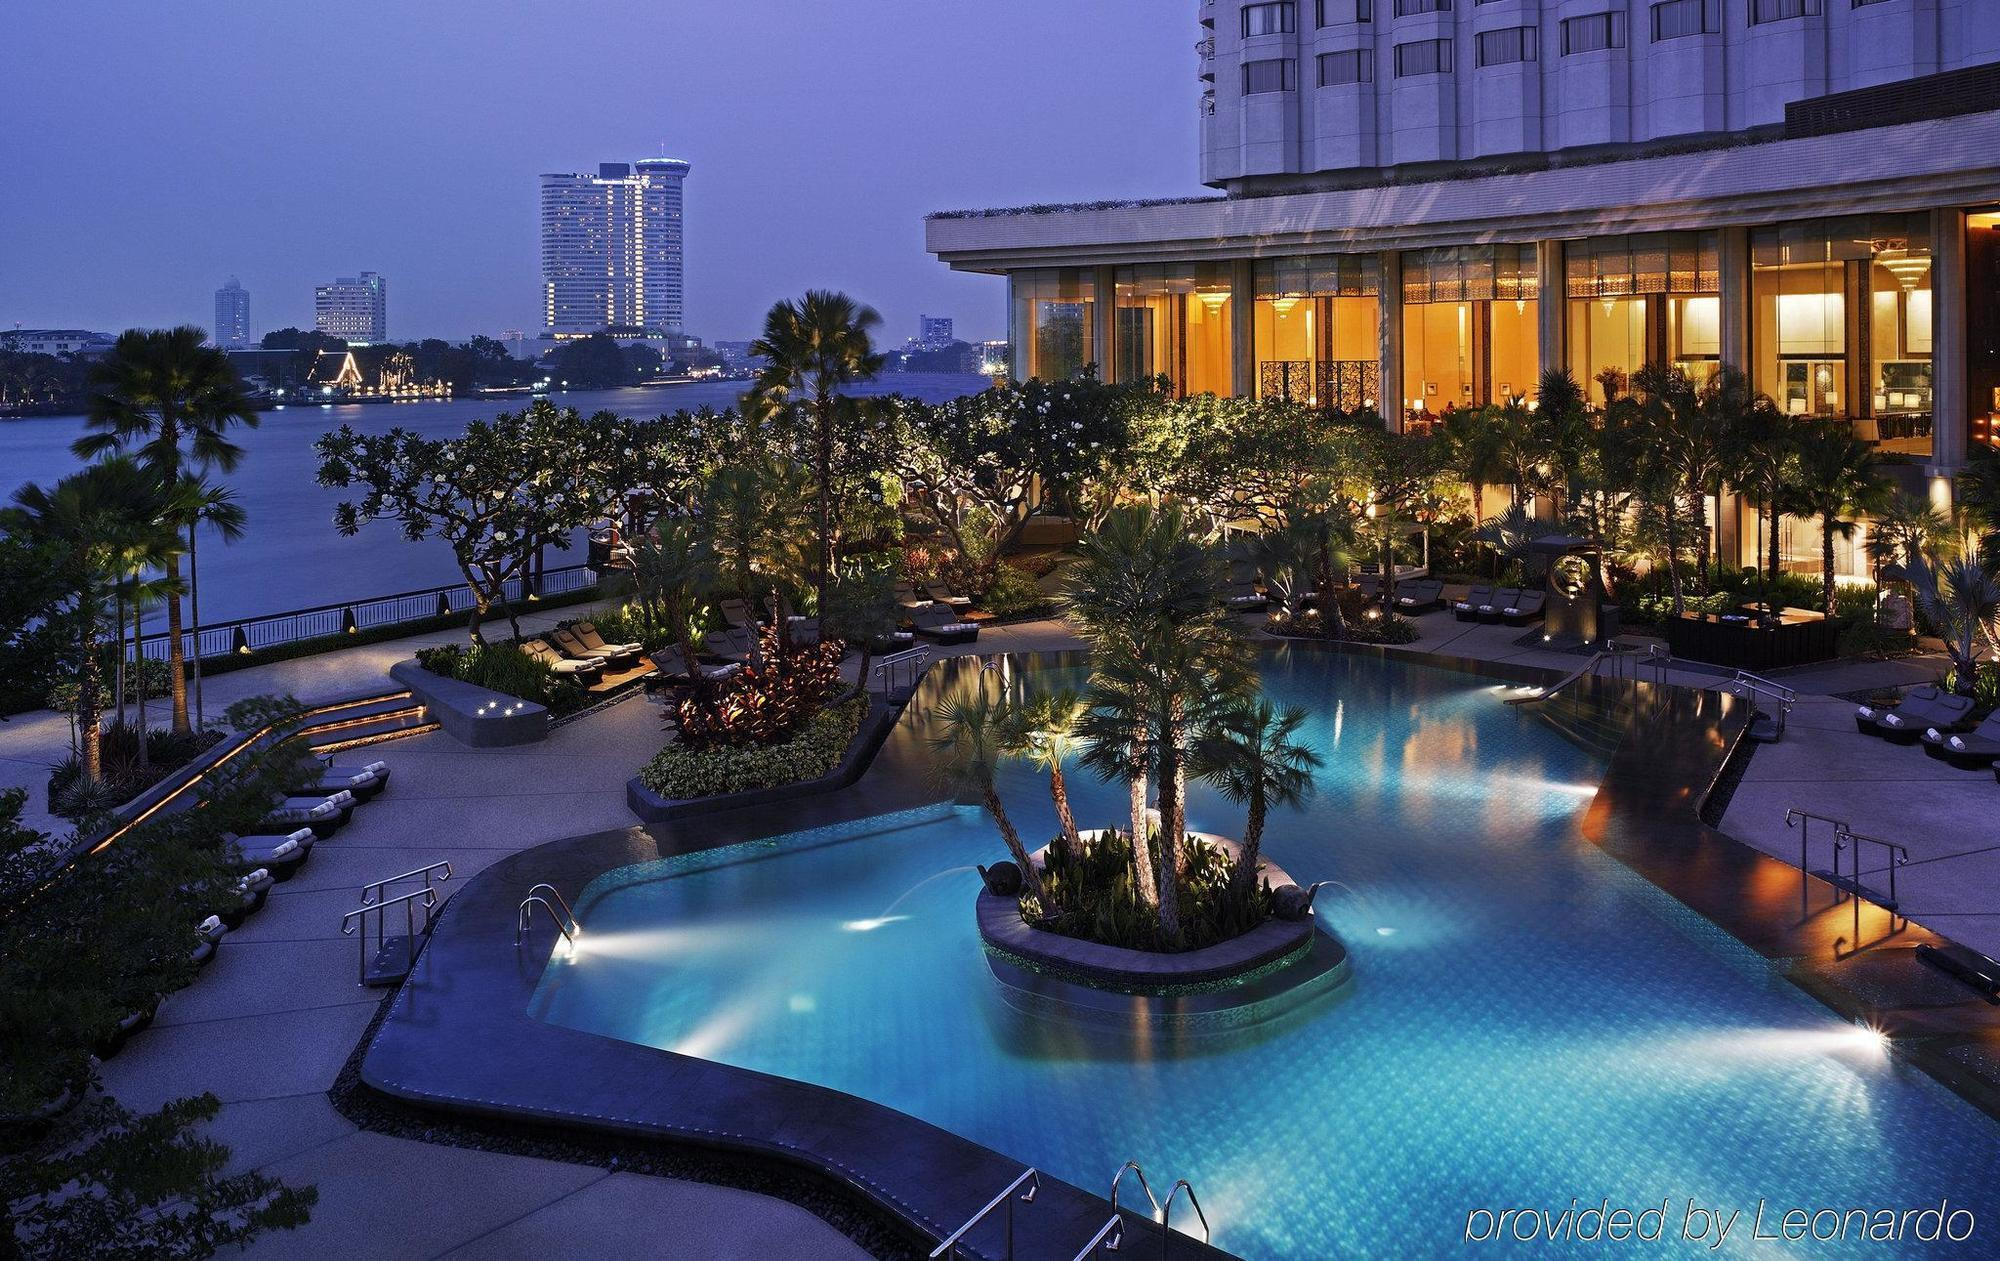 shangrila hotel Luxury hotels and resorts spanning key locations around the world shangri-la  hotels and resorts offer exuberant service, a range of amenities, and stylish.